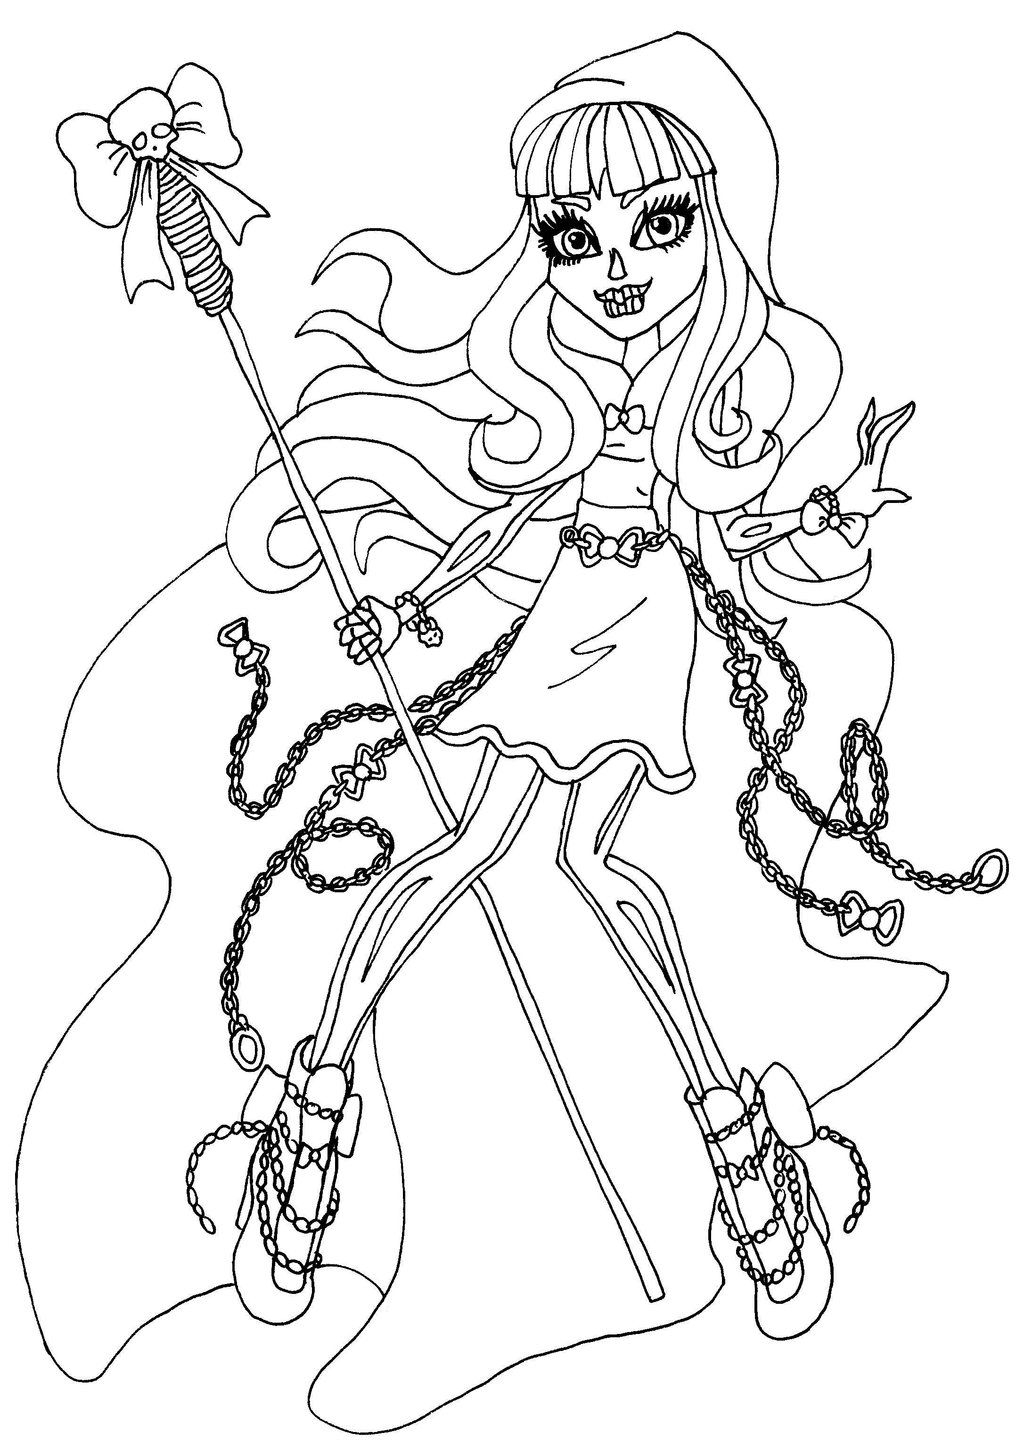 Best Monster High Coloring Pages Printable Print Color Craft Pic to Print Of Inspiring Monster High Coloring Pages Colouring Sheets Printables Gallery